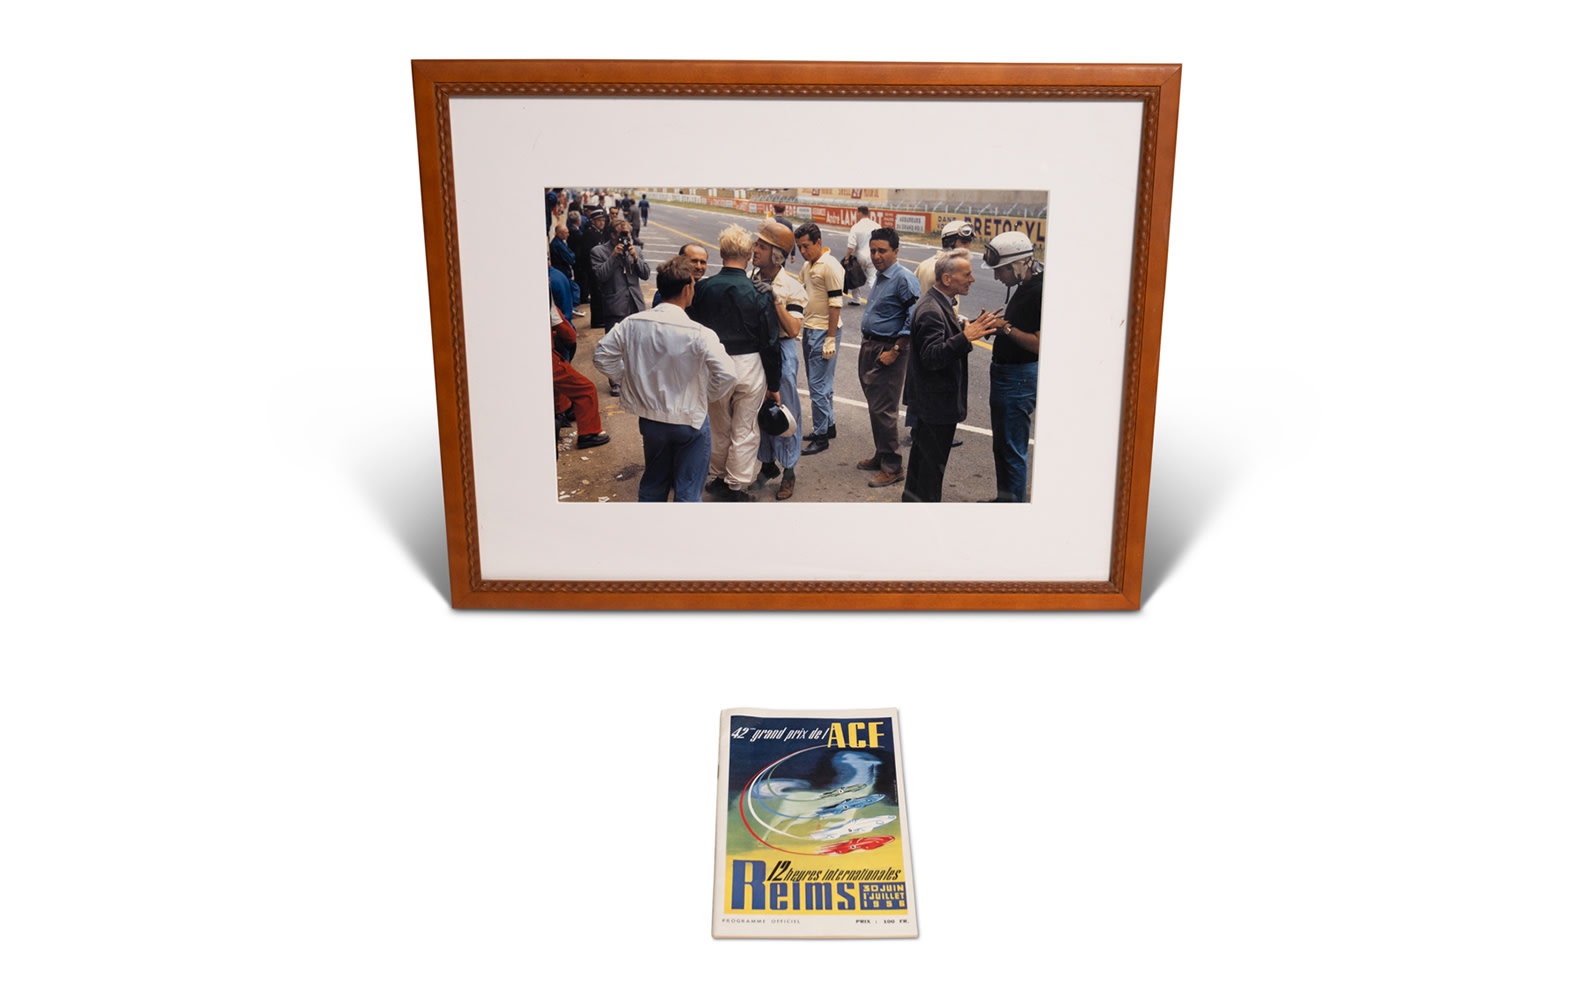 1956 French Grand Prix at Reims Framed Photograph by Phil Hill and Official Race Program